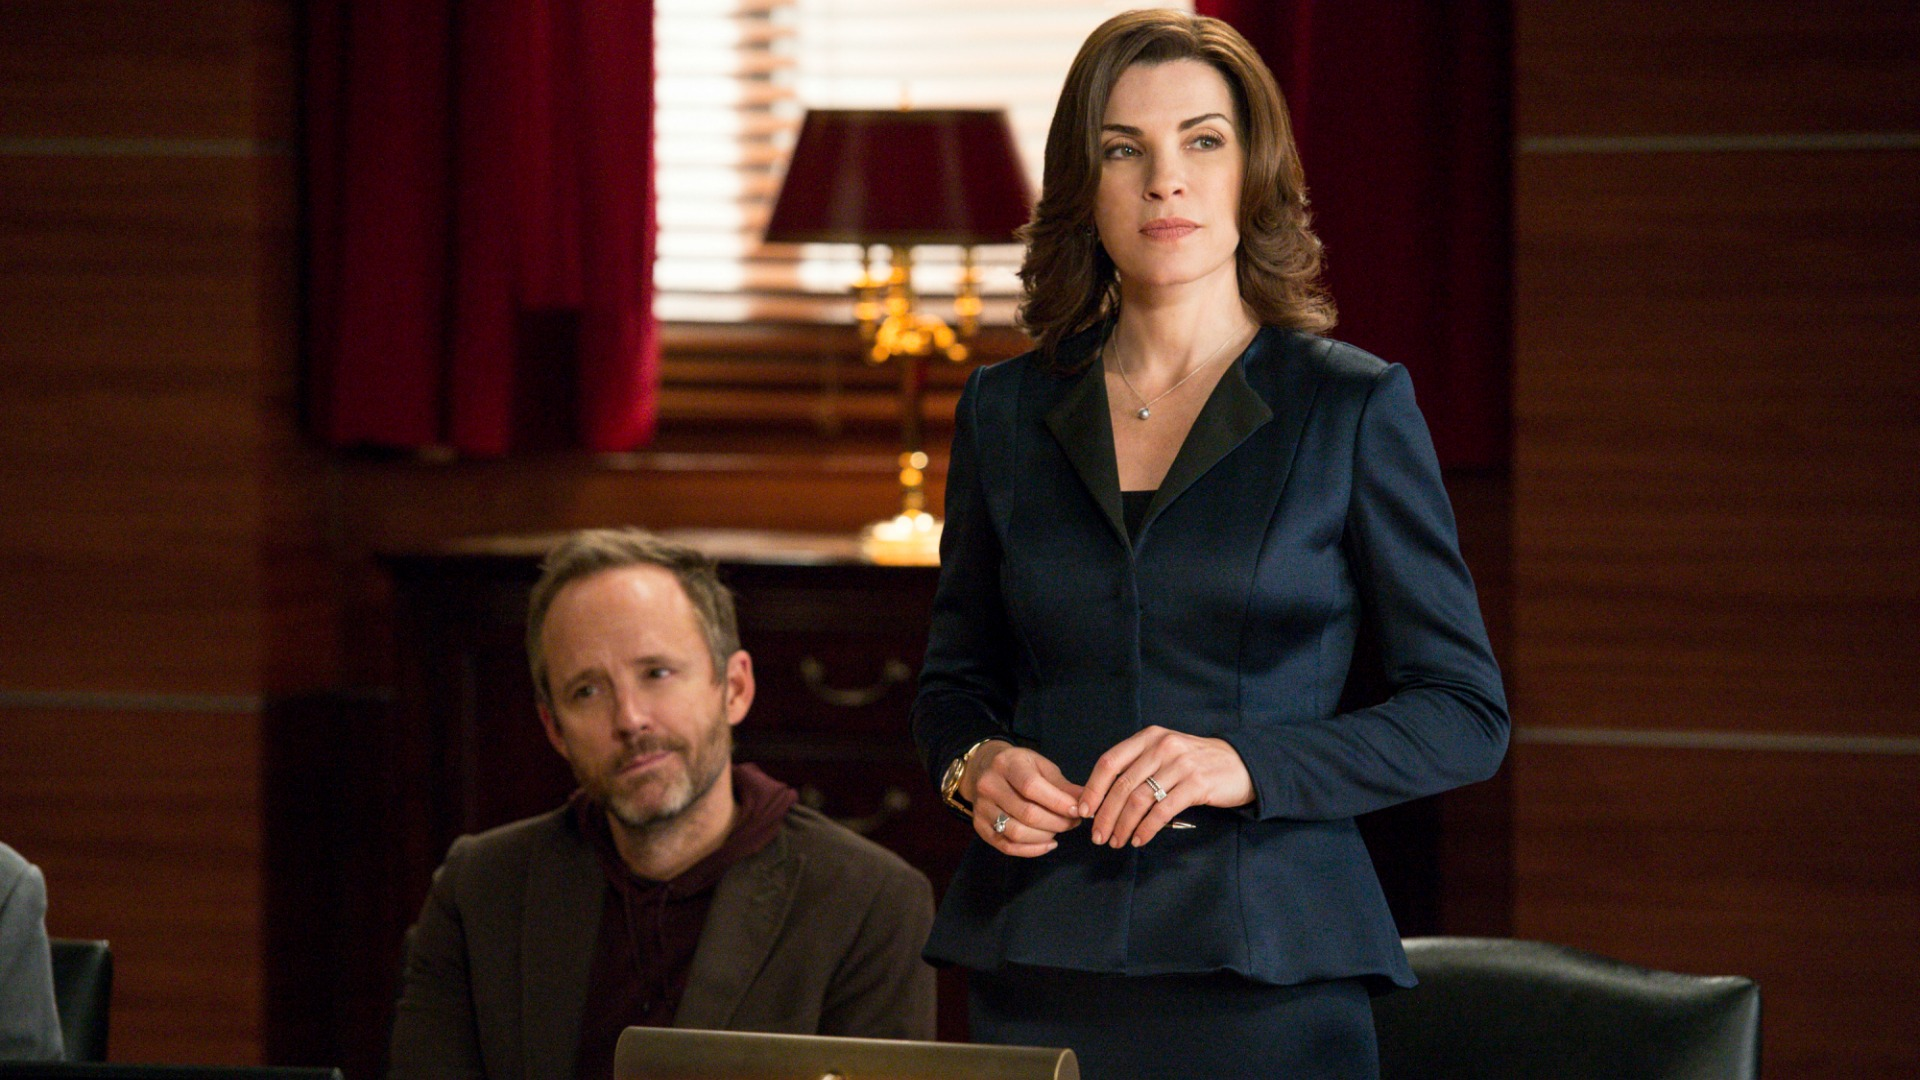 61 Exciting Guest Stars Of The Good Wife - The Good Wife Photos